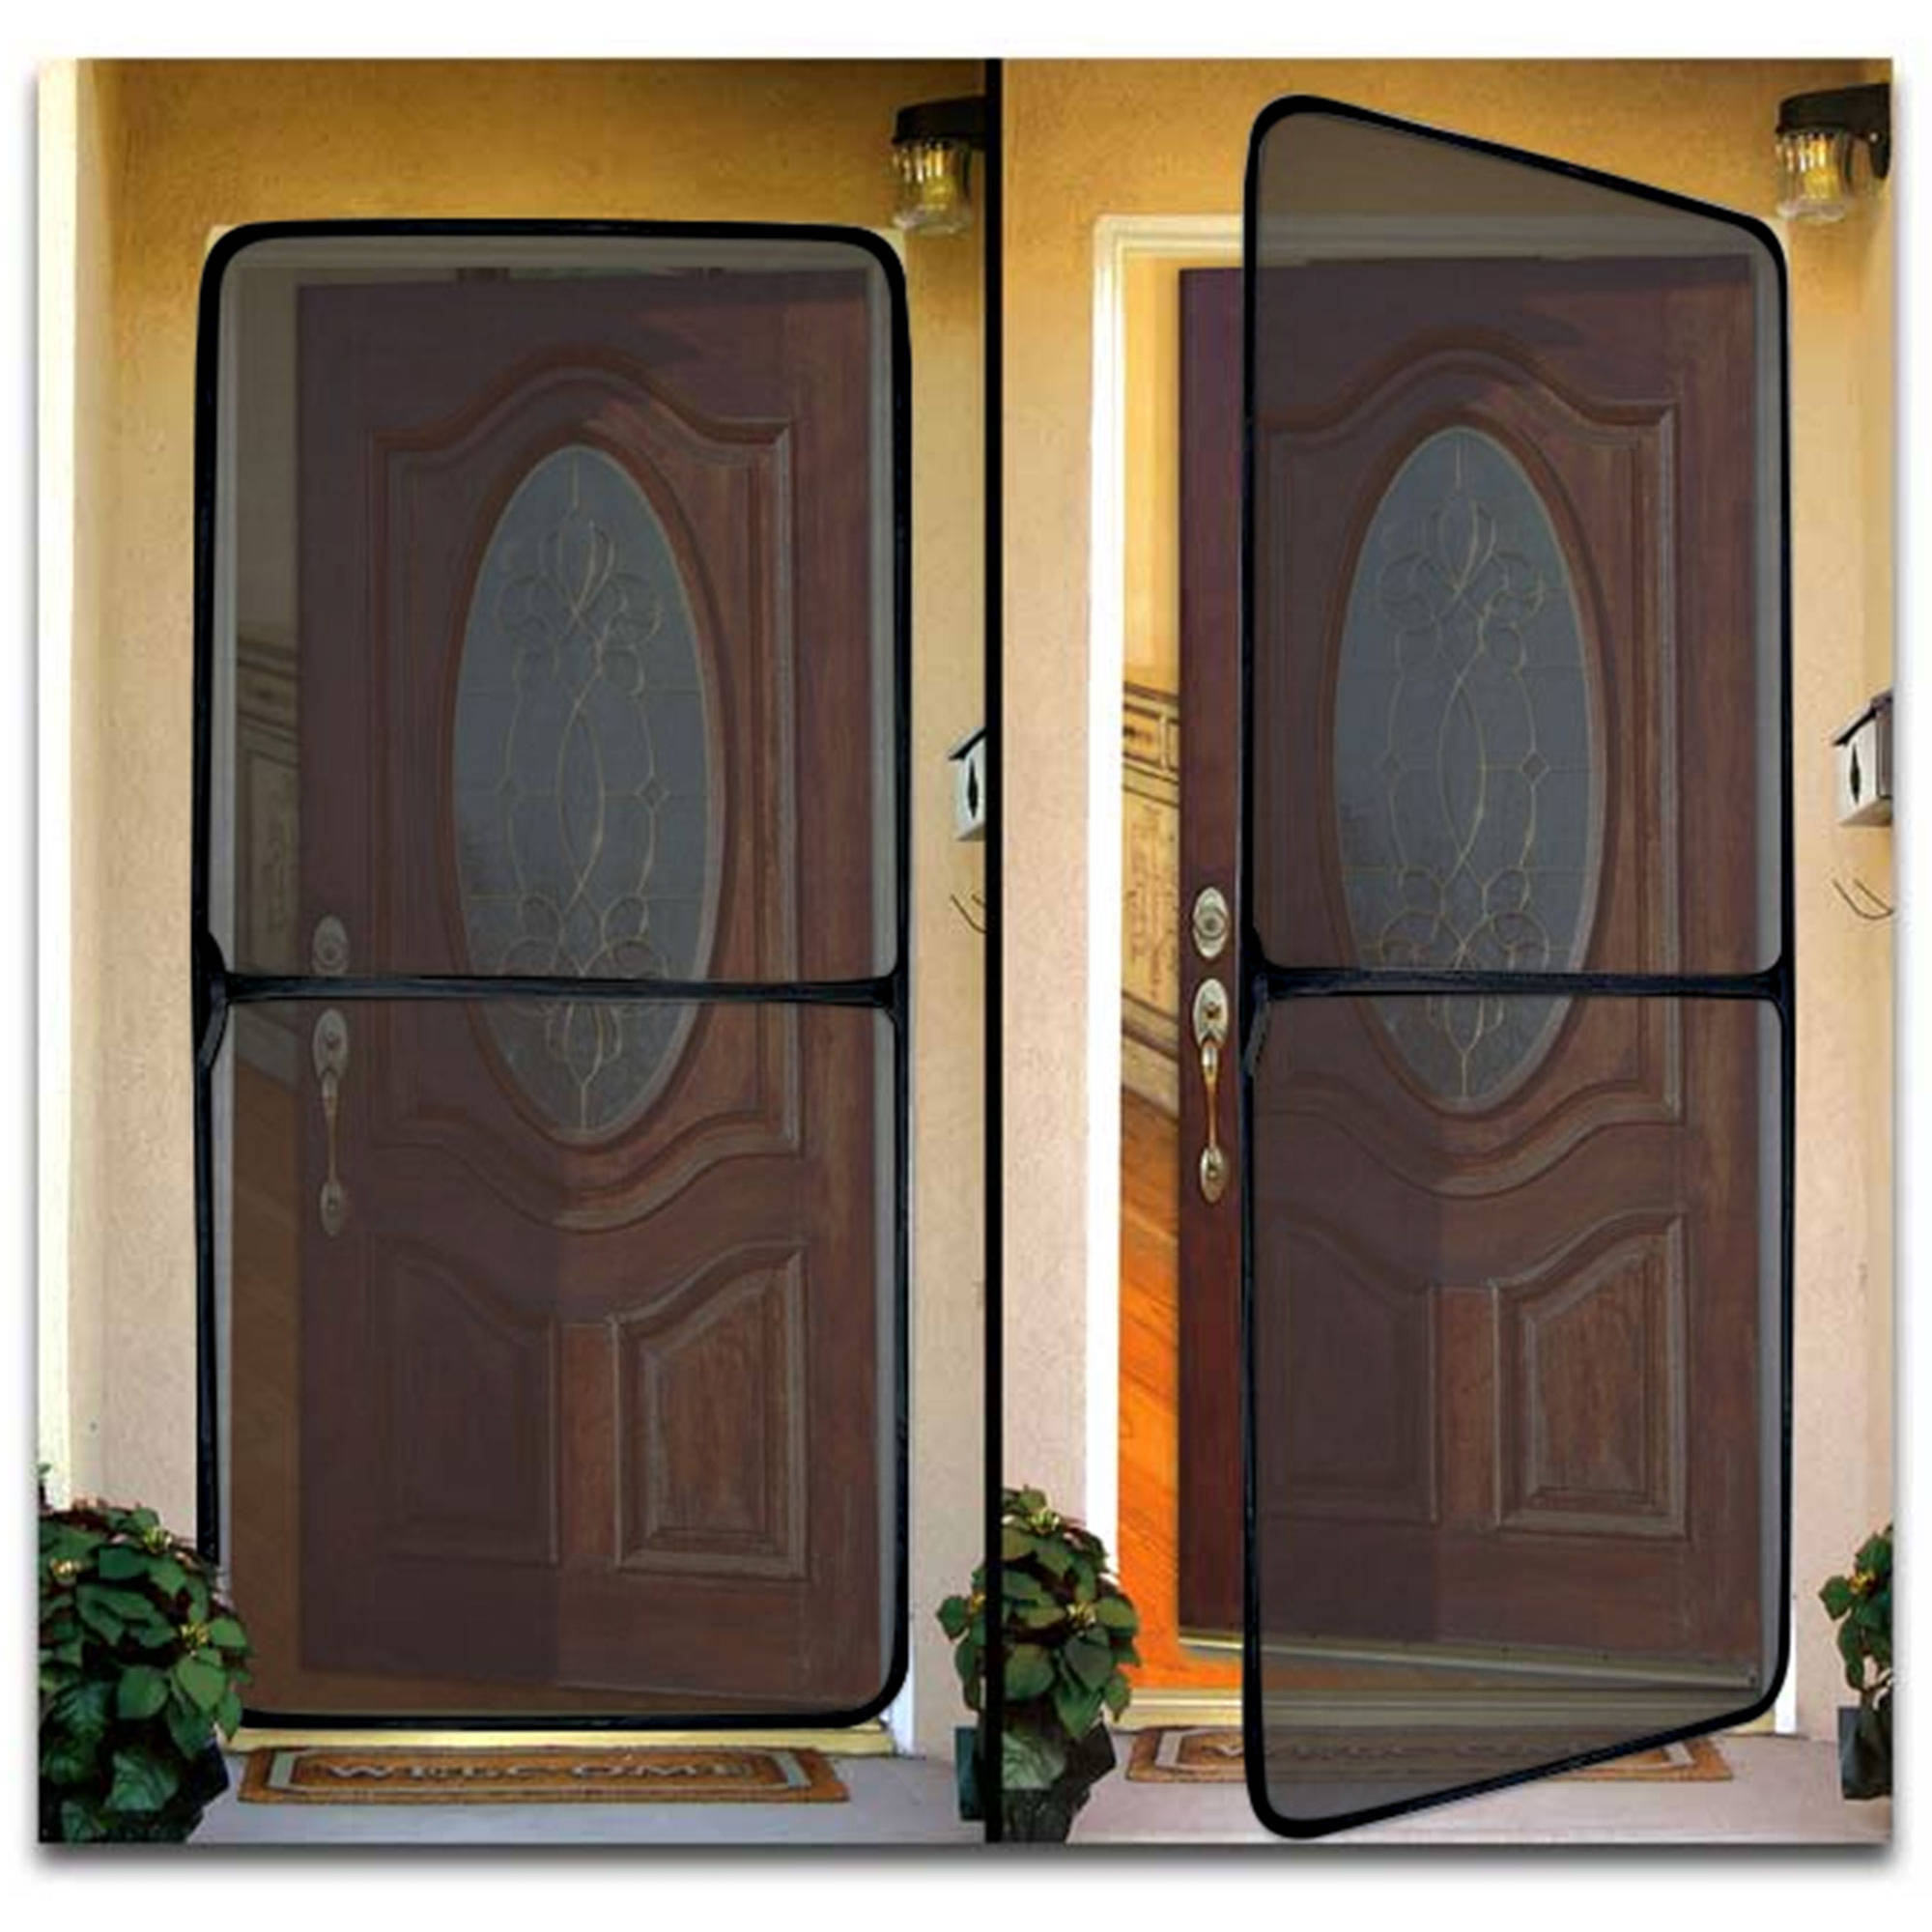 Instant Screen Door For Home And Office & Instant Screen Door For Home And Office - Walmart.com